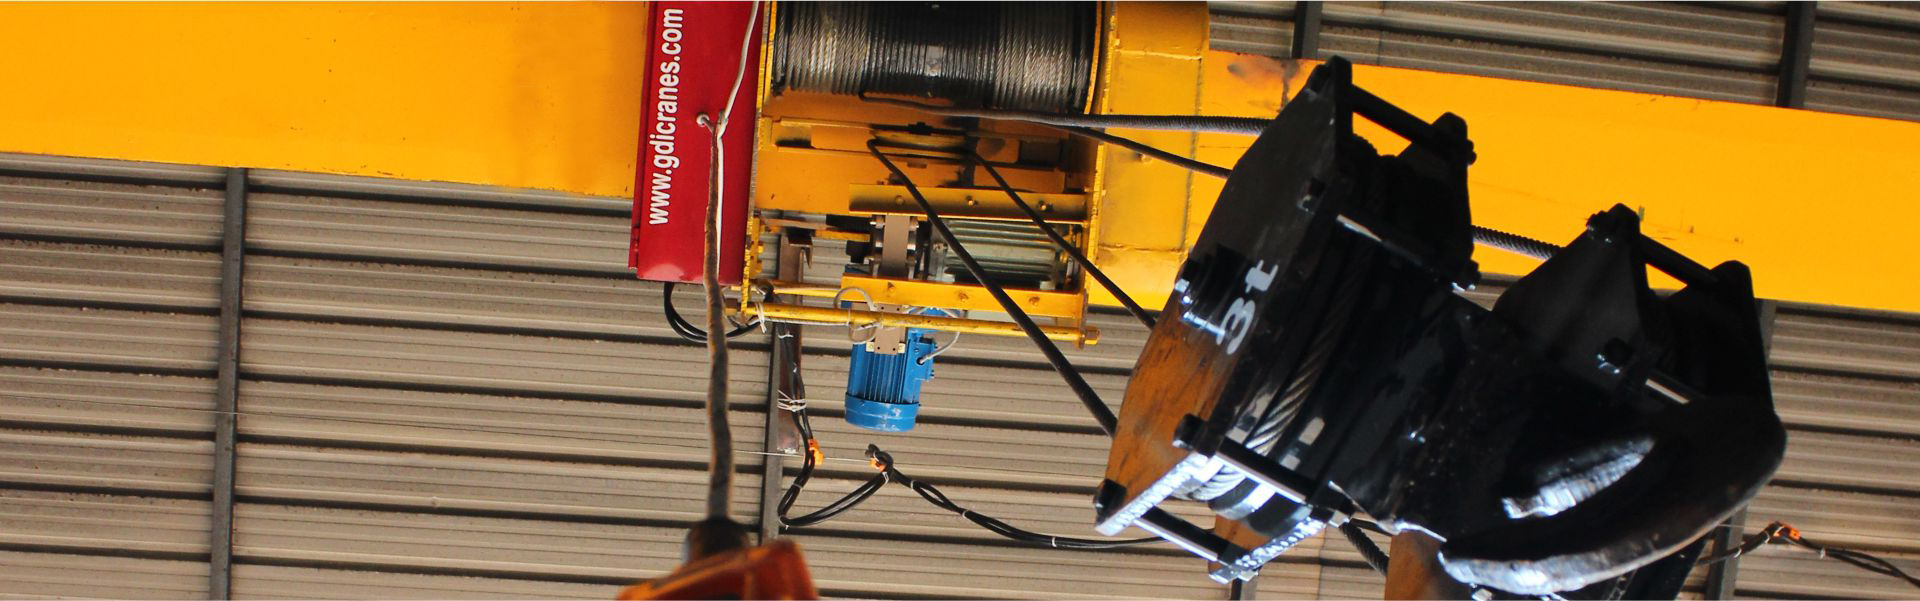 Electric wire rope hoist manufacturers in Ludhiana Punjab India